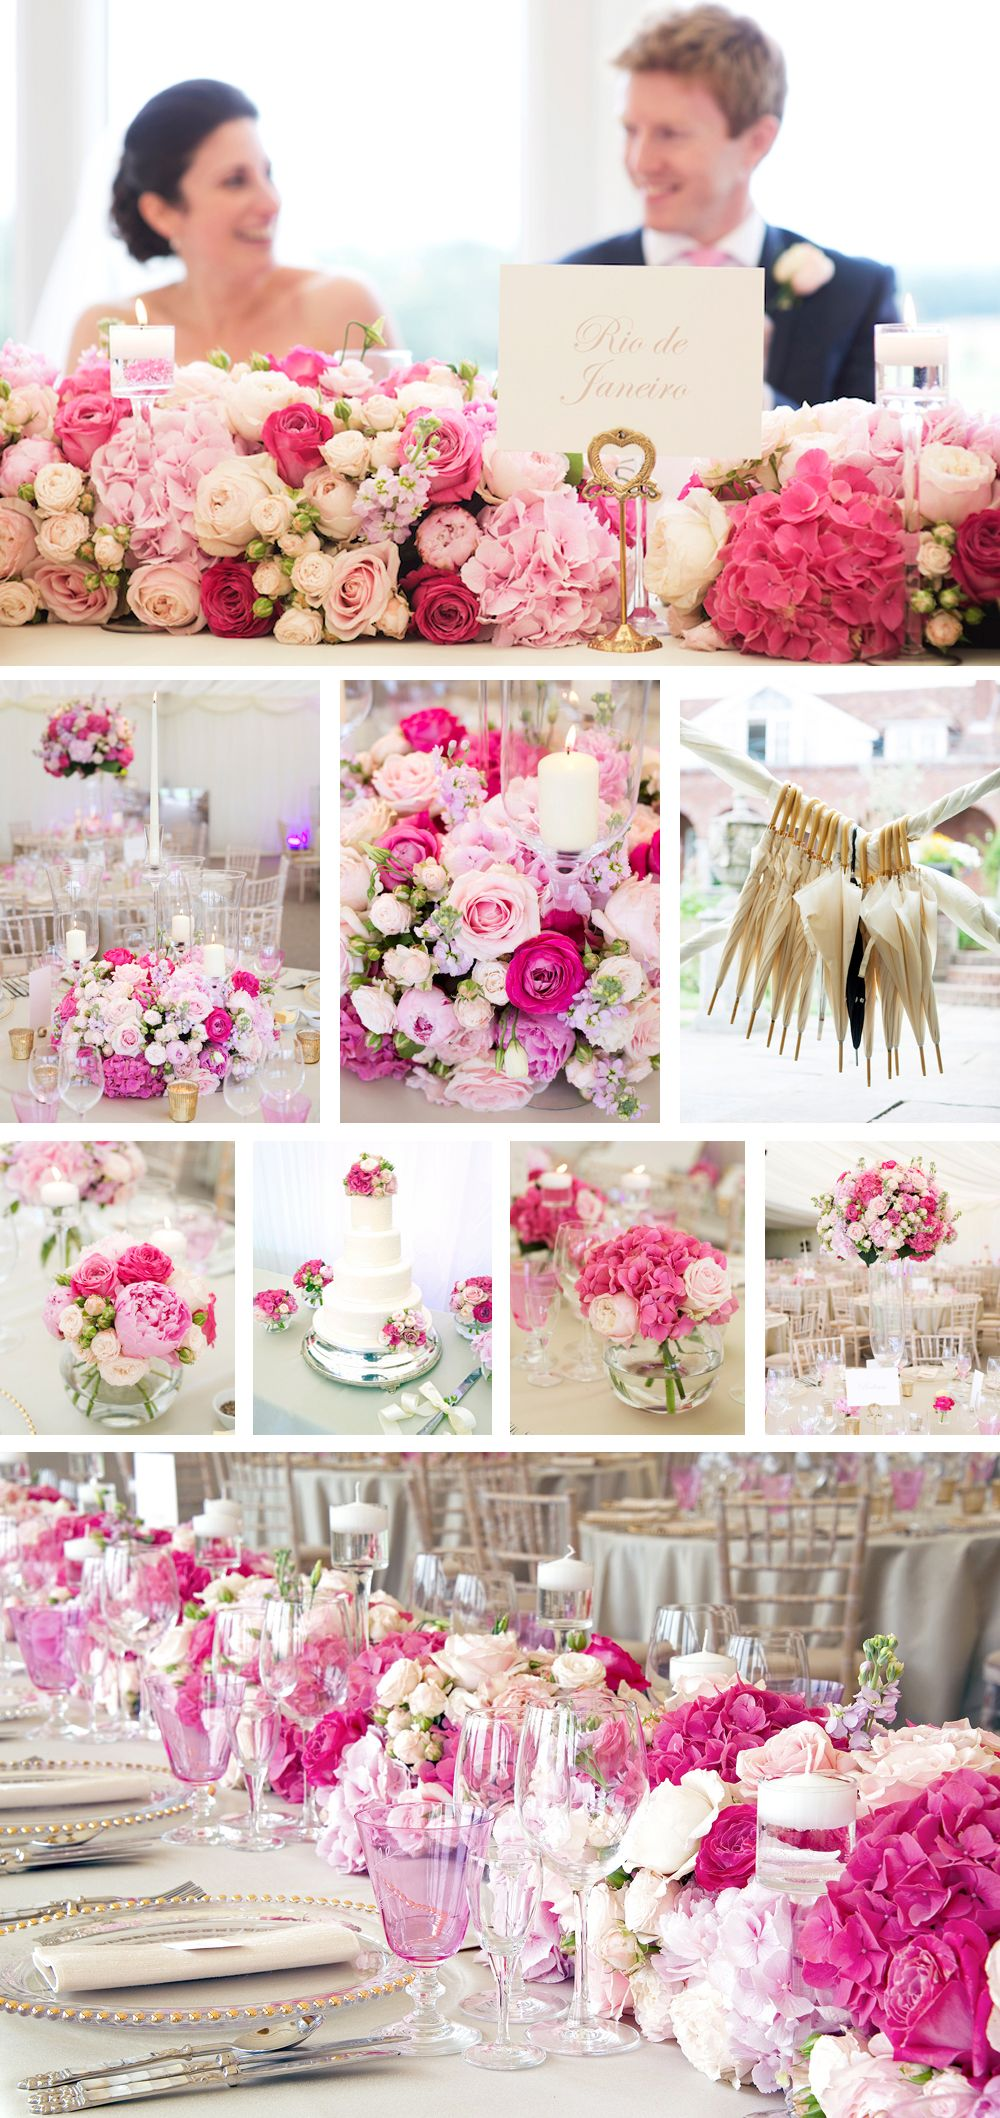 Wedding decorations luxury  Luxury wedding flowers by Philippa Craddock acclaimed wedding